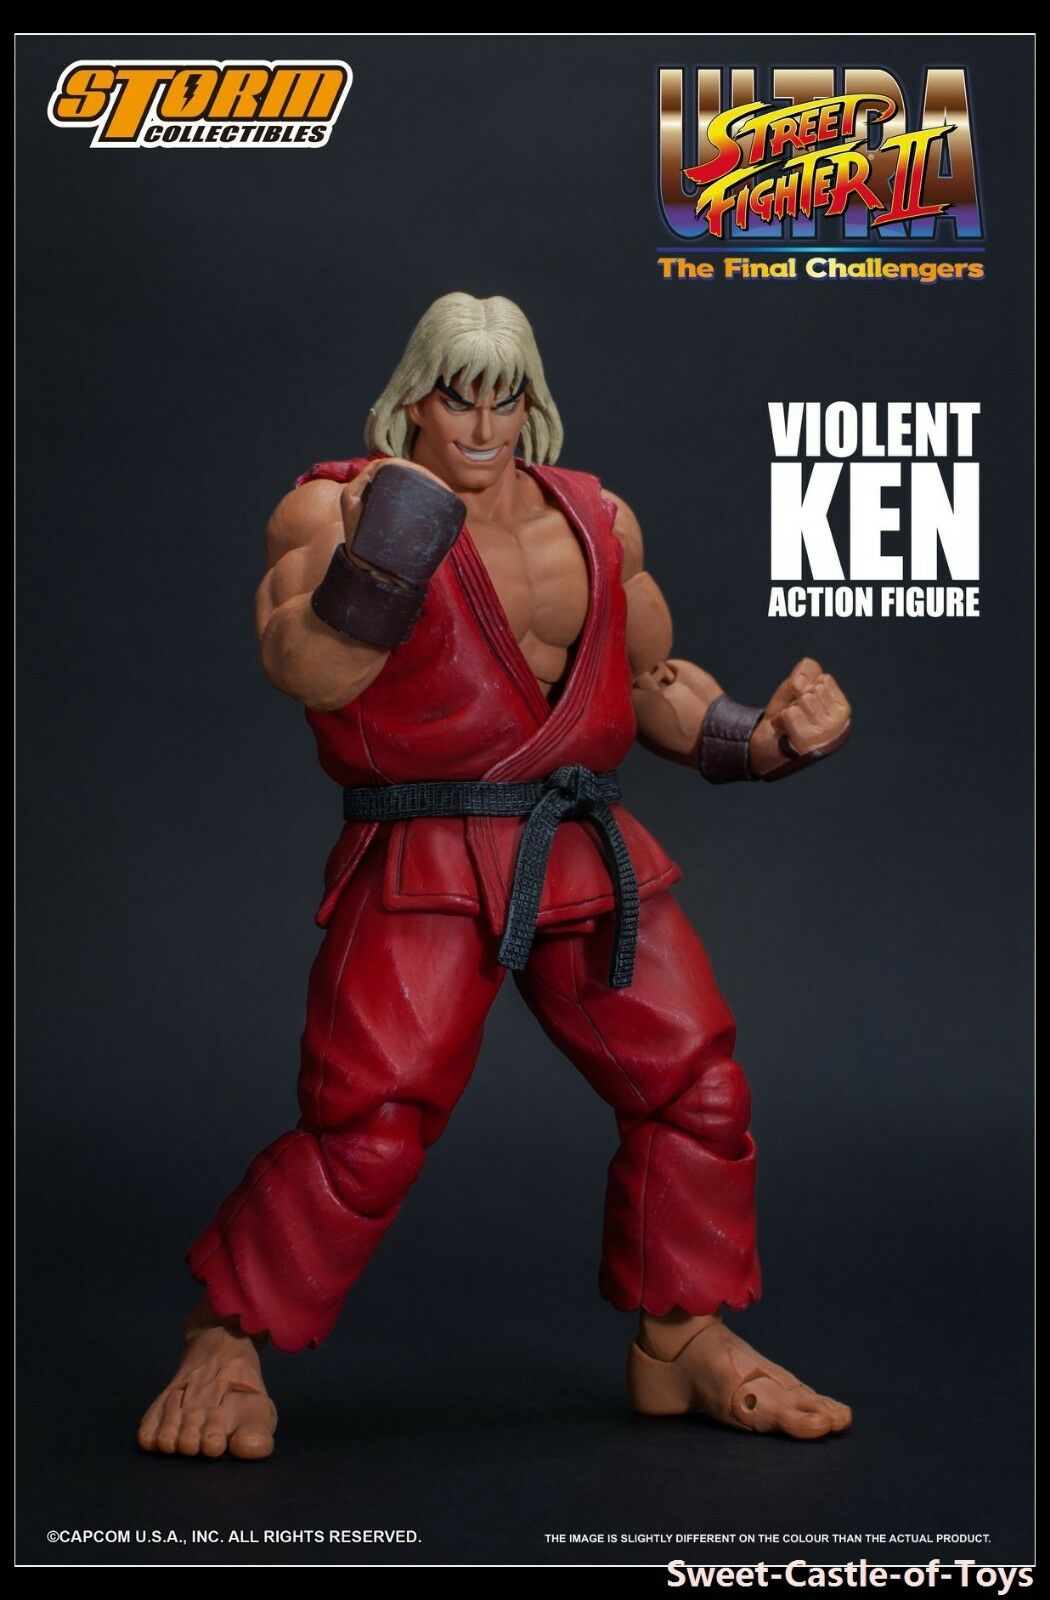 1 12 Storm Toys Ultra Street Fighter II The  Final Challengers Violent Ken